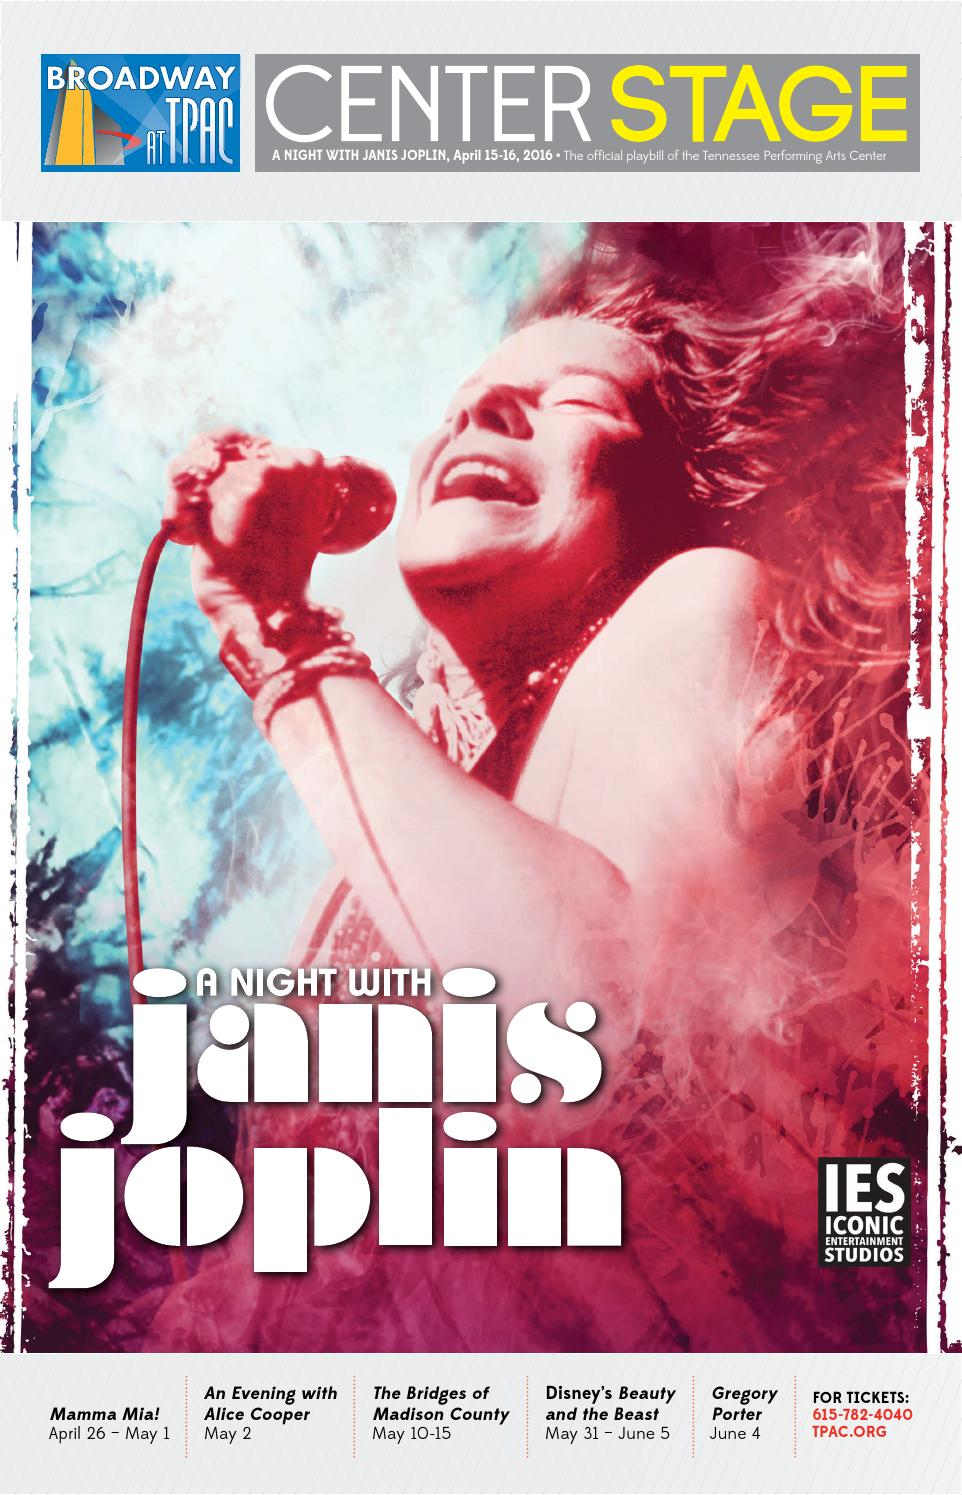 TPAC Presents: A Night with Janis Joplin by Performing Arts